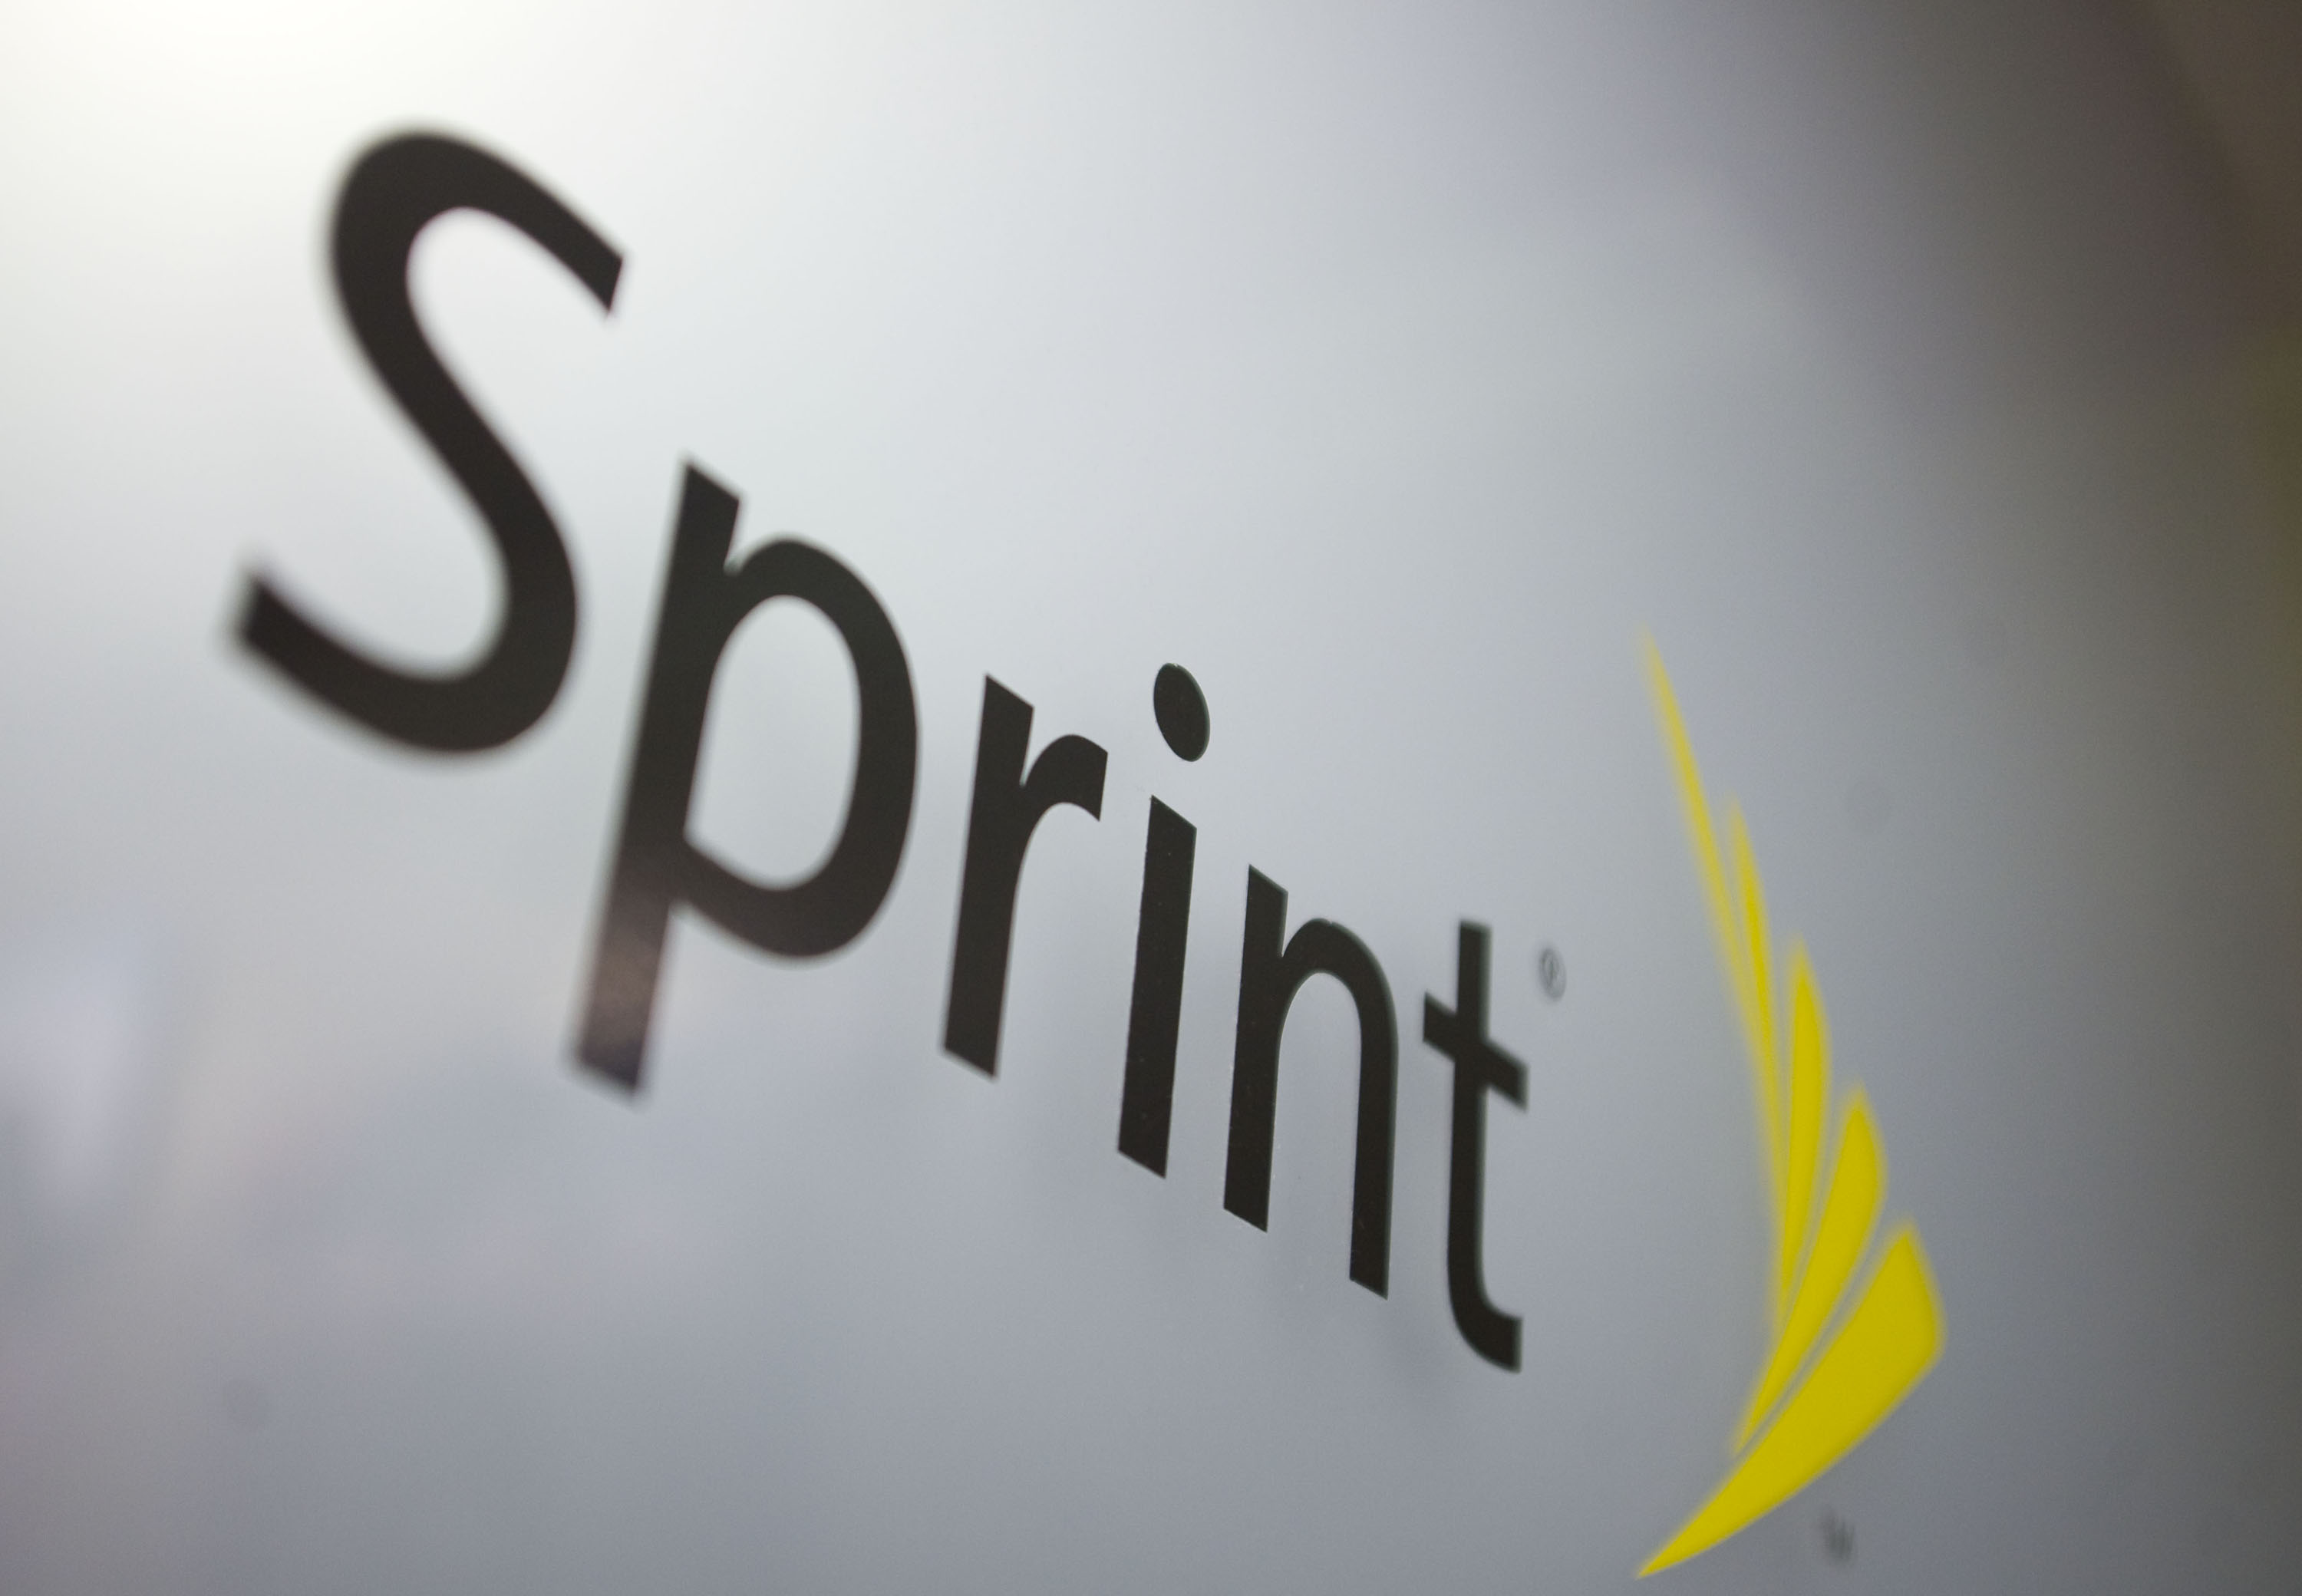 SoftBank increasing Sprint stake after T-Mobile deal called off